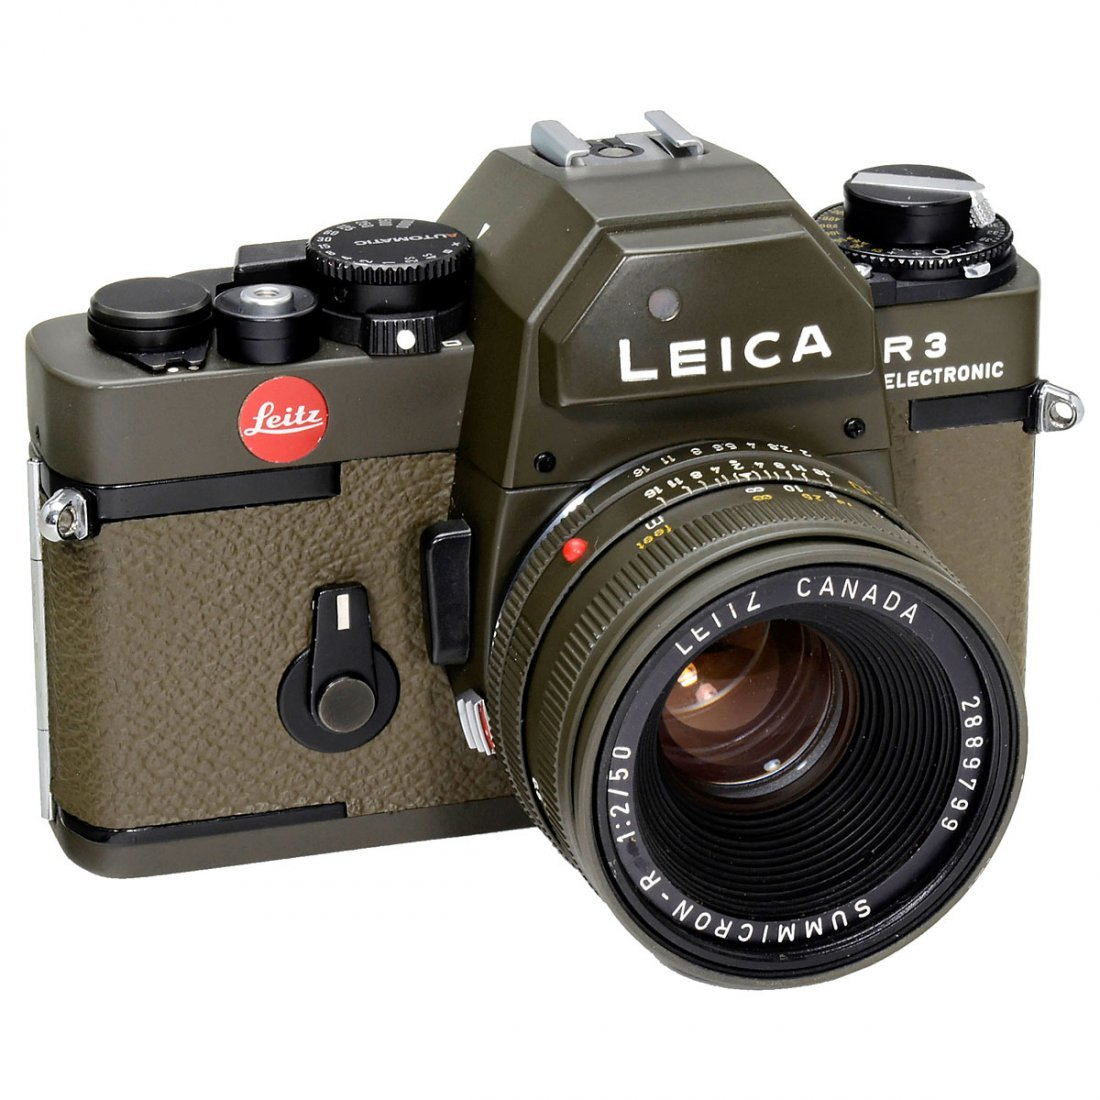 "Leica R3 electronic ""Safari"", 1978"